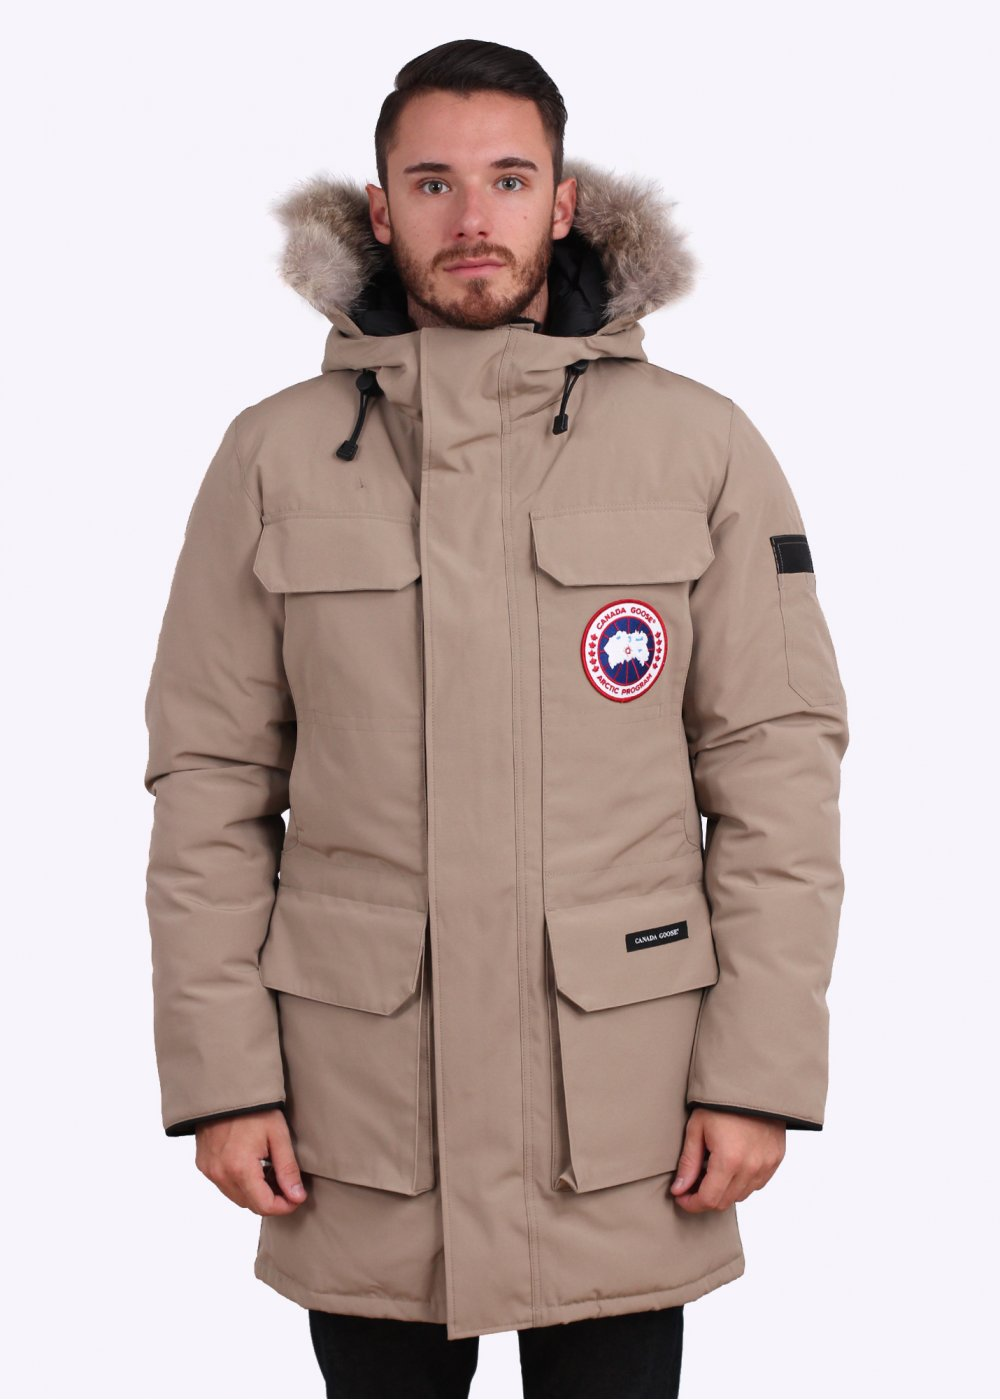 Canada Goose kensington parka outlet shop - 1443185817-91706900.jpg